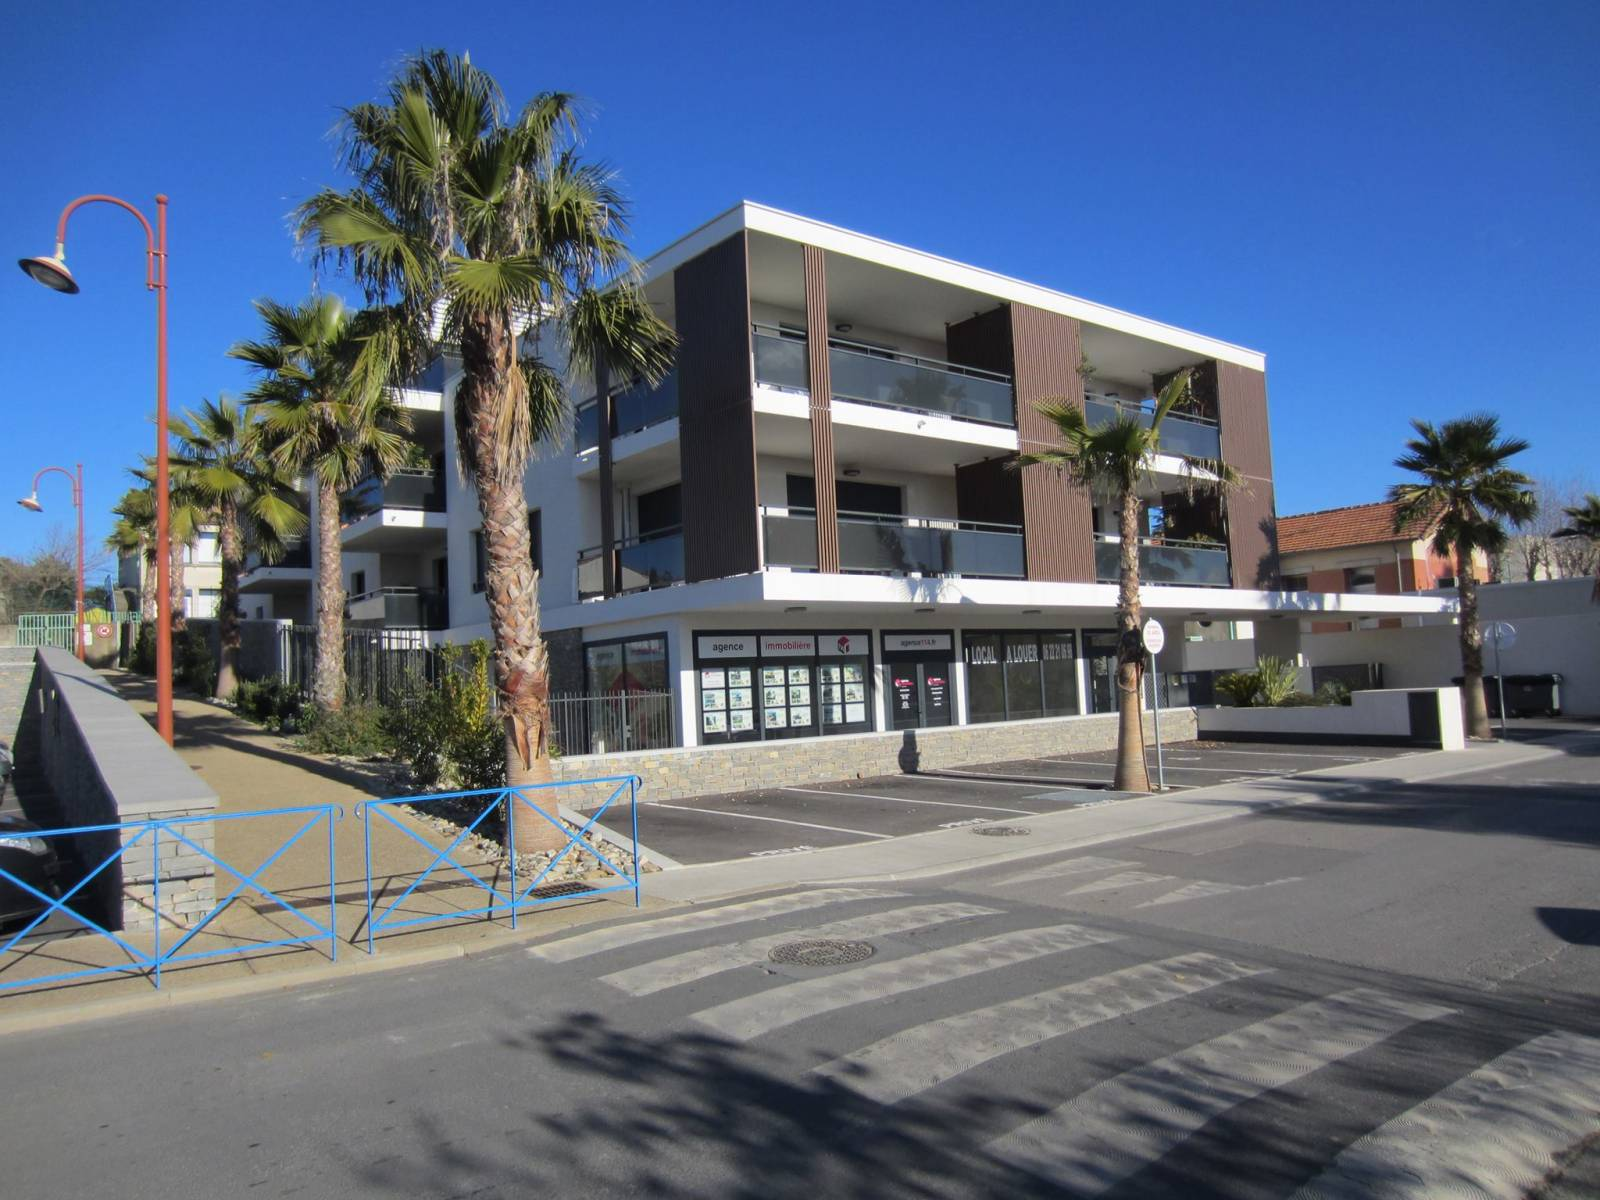 Agence immobili re baillargues agence 114 d m nagement for Agence immobiliere 34